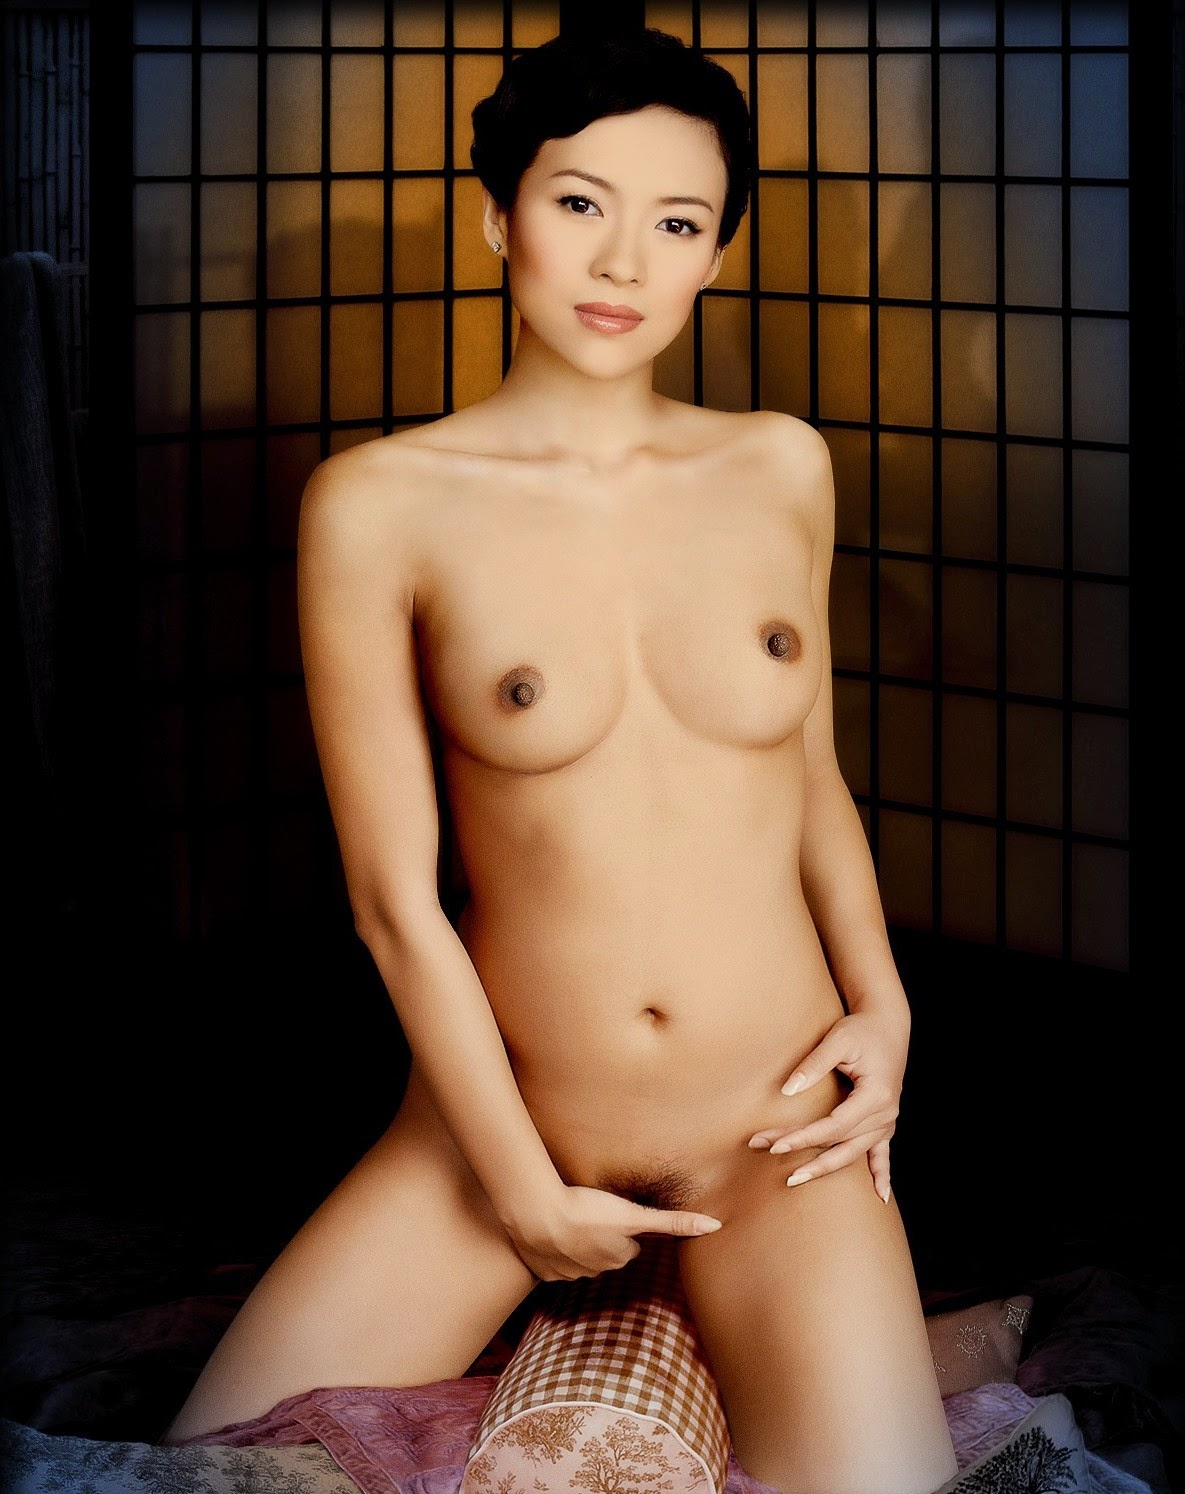 Hot asian actresses naked whom can